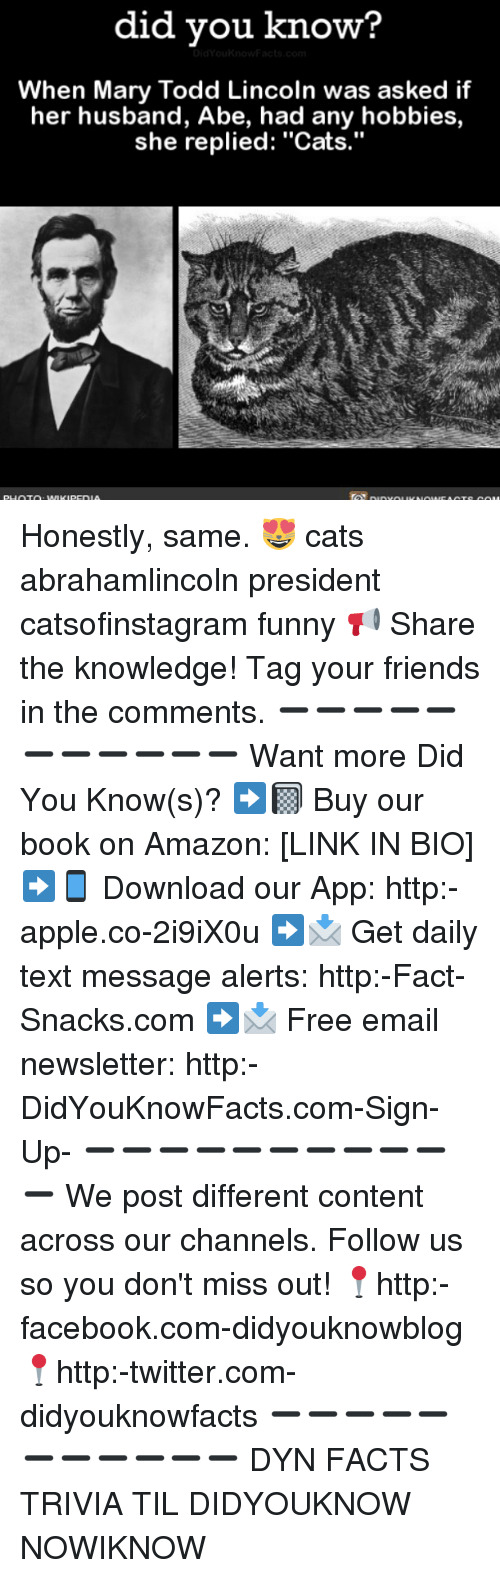 """Amazon, Apple, and Cats: did you know?  When Mary Todd Lincoln was asked if  her husband, Abe, had any hobbies,  she replied: """"Cats."""" Honestly, same. 😻 cats abrahamlincoln president catsofinstagram funny 📢 Share the knowledge! Tag your friends in the comments. ➖➖➖➖➖➖➖➖➖➖➖ Want more Did You Know(s)? ➡📓 Buy our book on Amazon: [LINK IN BIO] ➡📱 Download our App: http:-apple.co-2i9iX0u ➡📩 Get daily text message alerts: http:-Fact-Snacks.com ➡📩 Free email newsletter: http:-DidYouKnowFacts.com-Sign-Up- ➖➖➖➖➖➖➖➖➖➖➖ We post different content across our channels. Follow us so you don't miss out! 📍http:-facebook.com-didyouknowblog 📍http:-twitter.com-didyouknowfacts ➖➖➖➖➖➖➖➖➖➖➖ DYN FACTS TRIVIA TIL DIDYOUKNOW NOWIKNOW"""